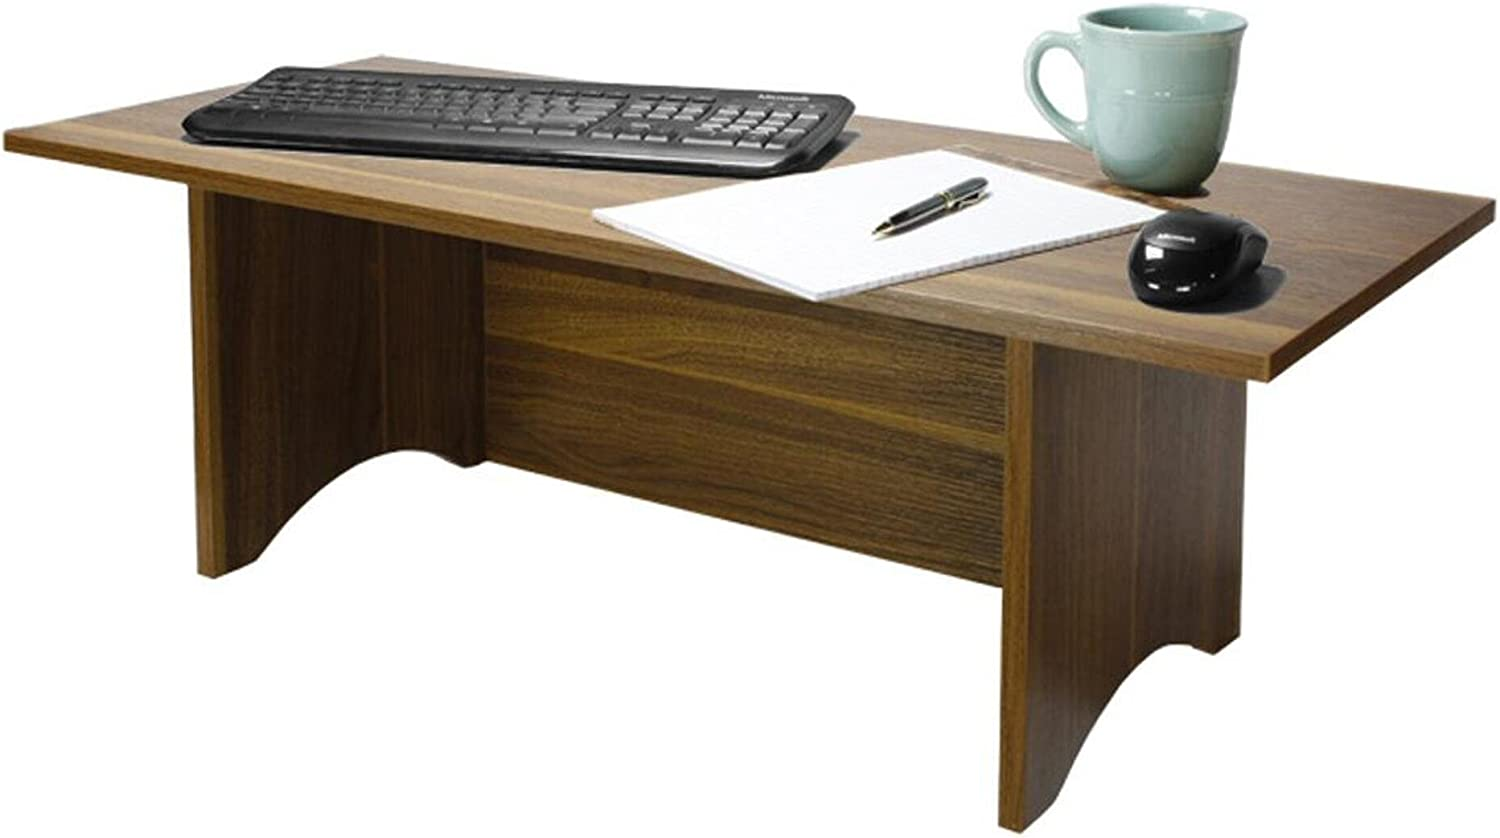 Red Cocoa, Regular Miracle Desk Stand Up Desk Convert a Regular Desk to Standing